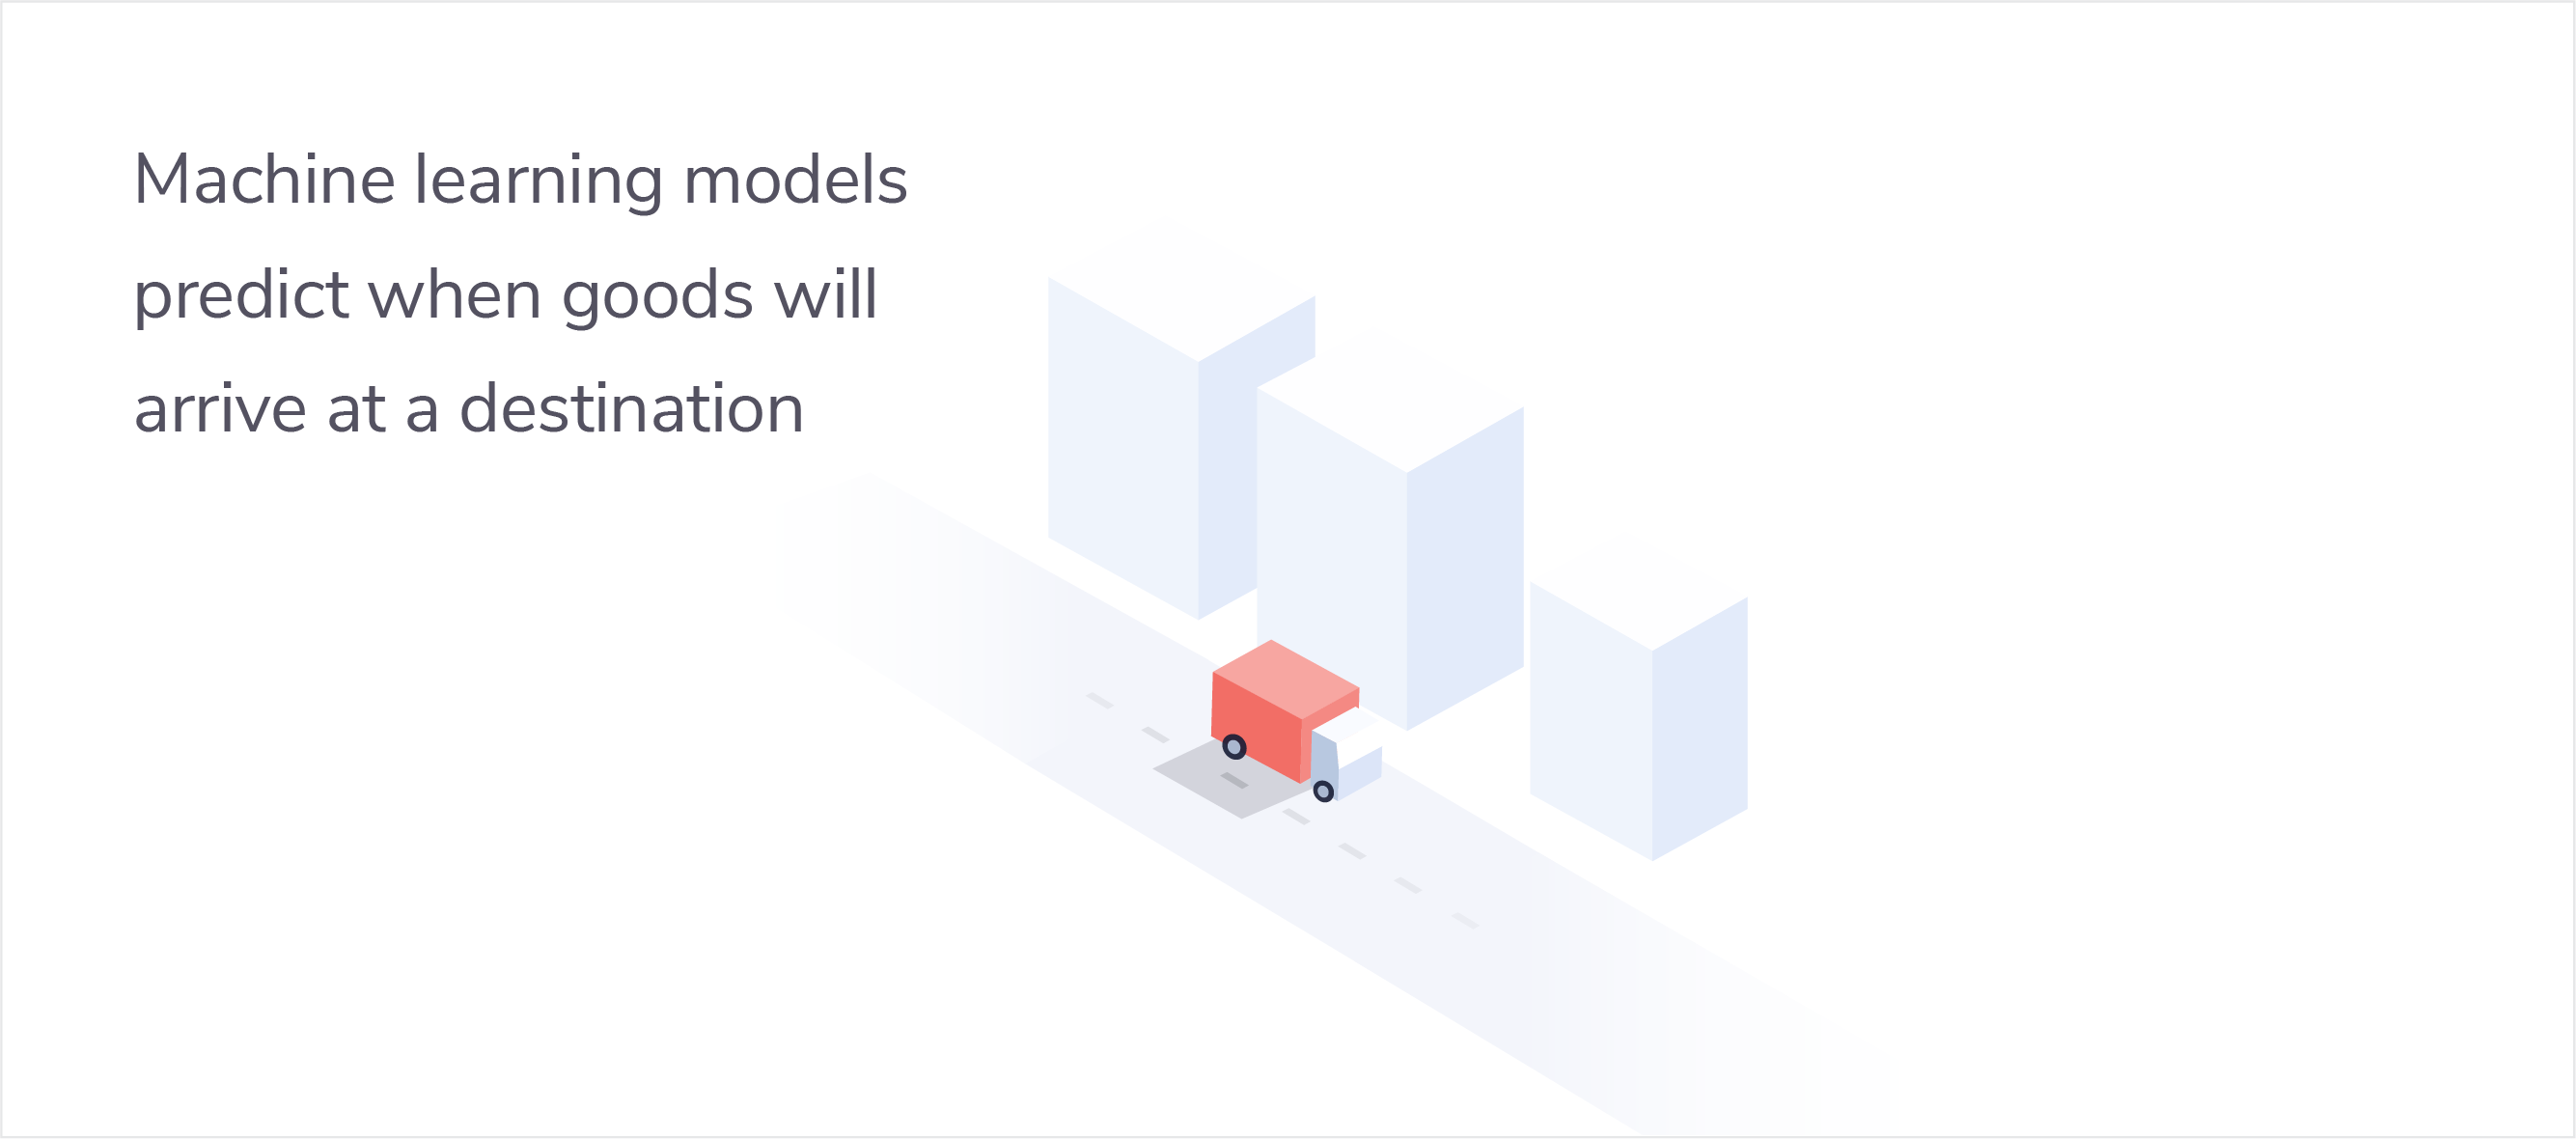 Machine learning models predict when goods will arrive at a destination